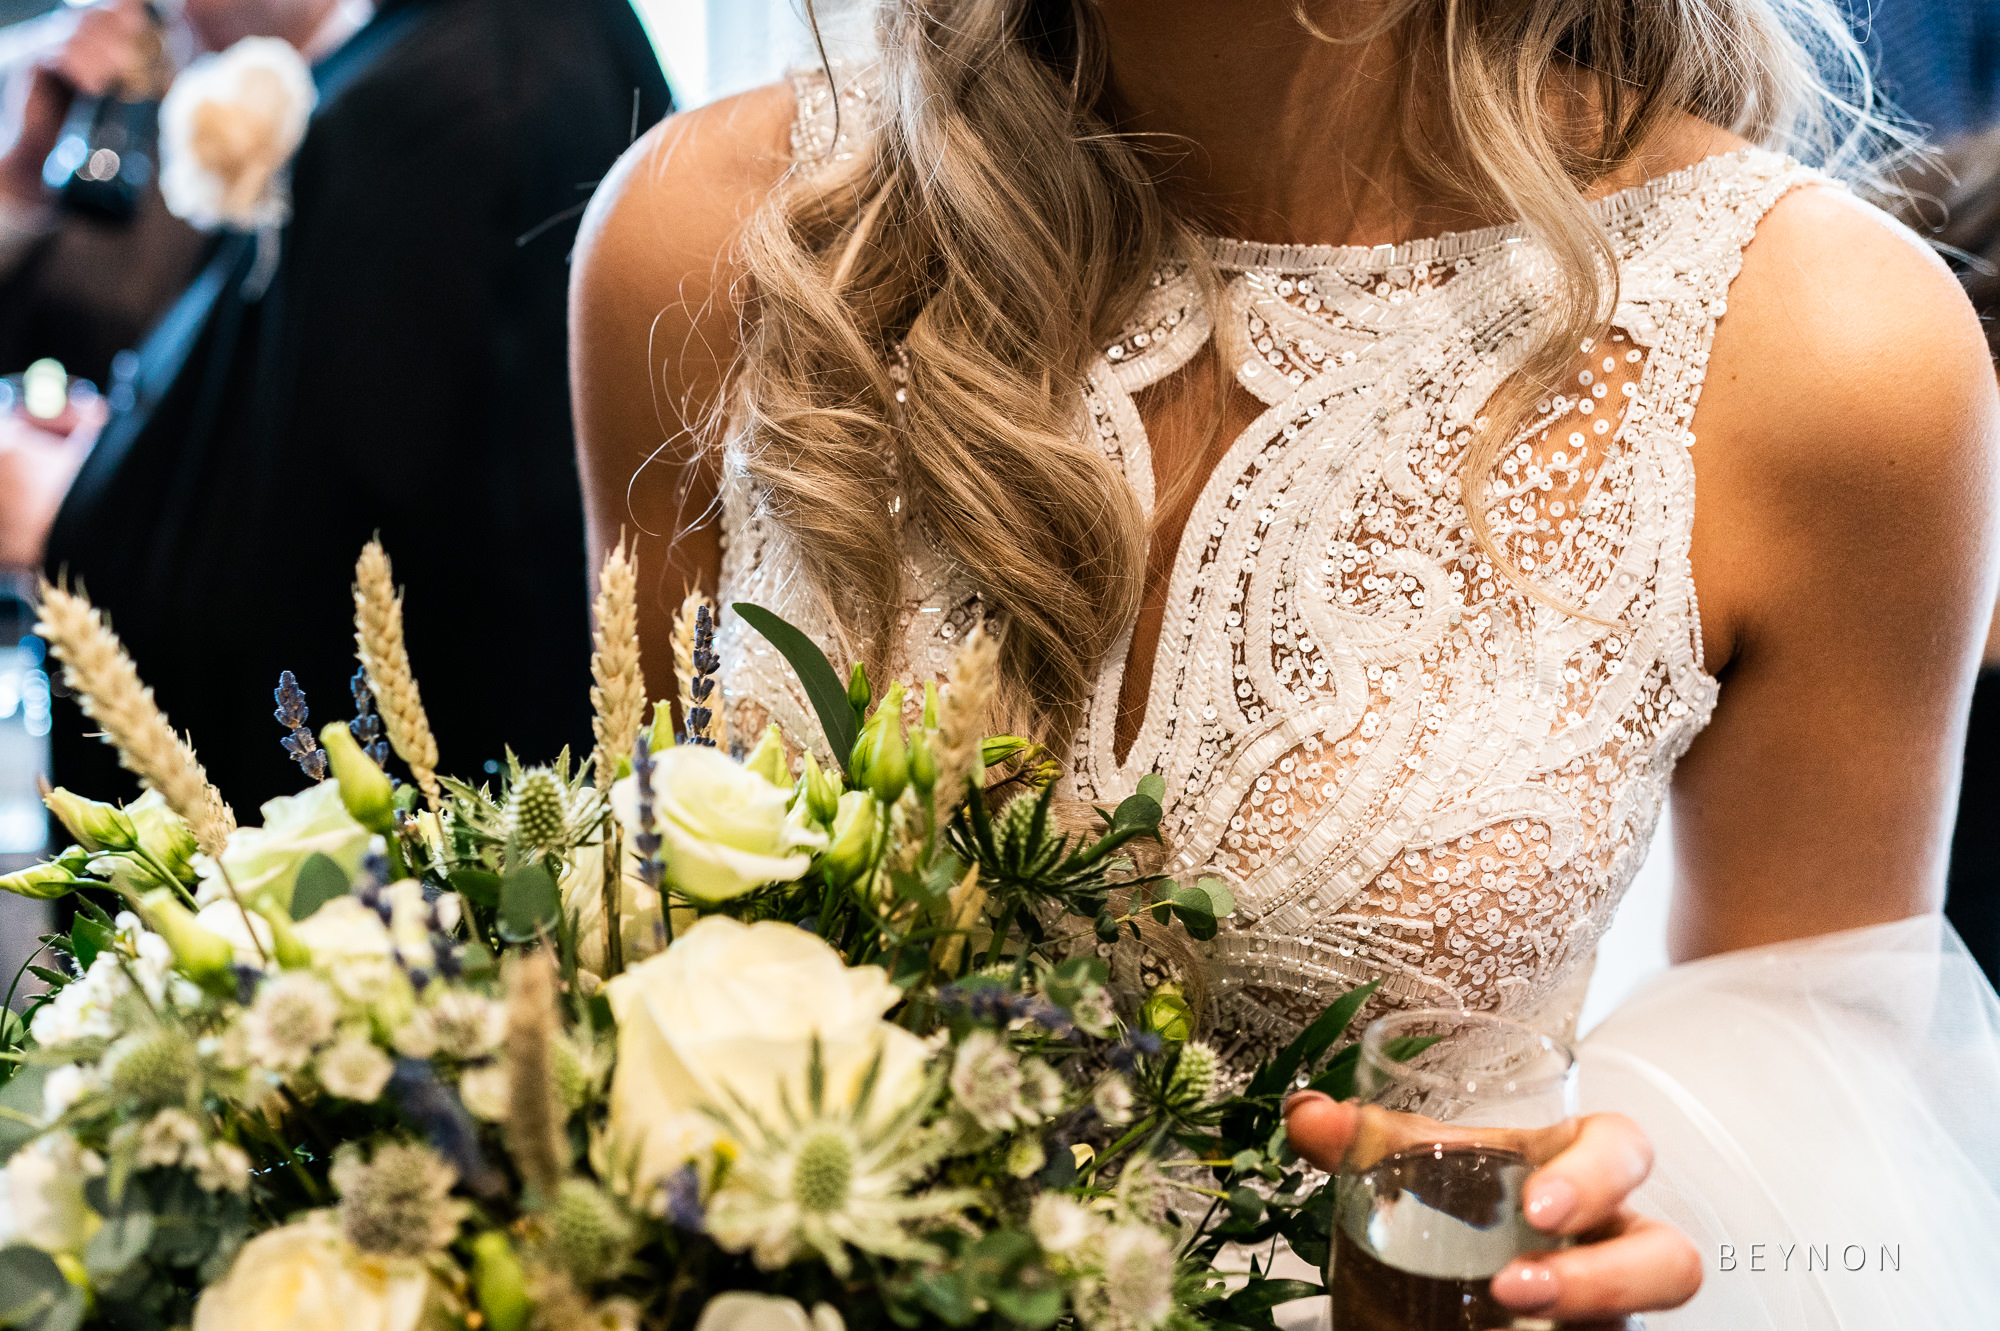 Details shot of the brides dress